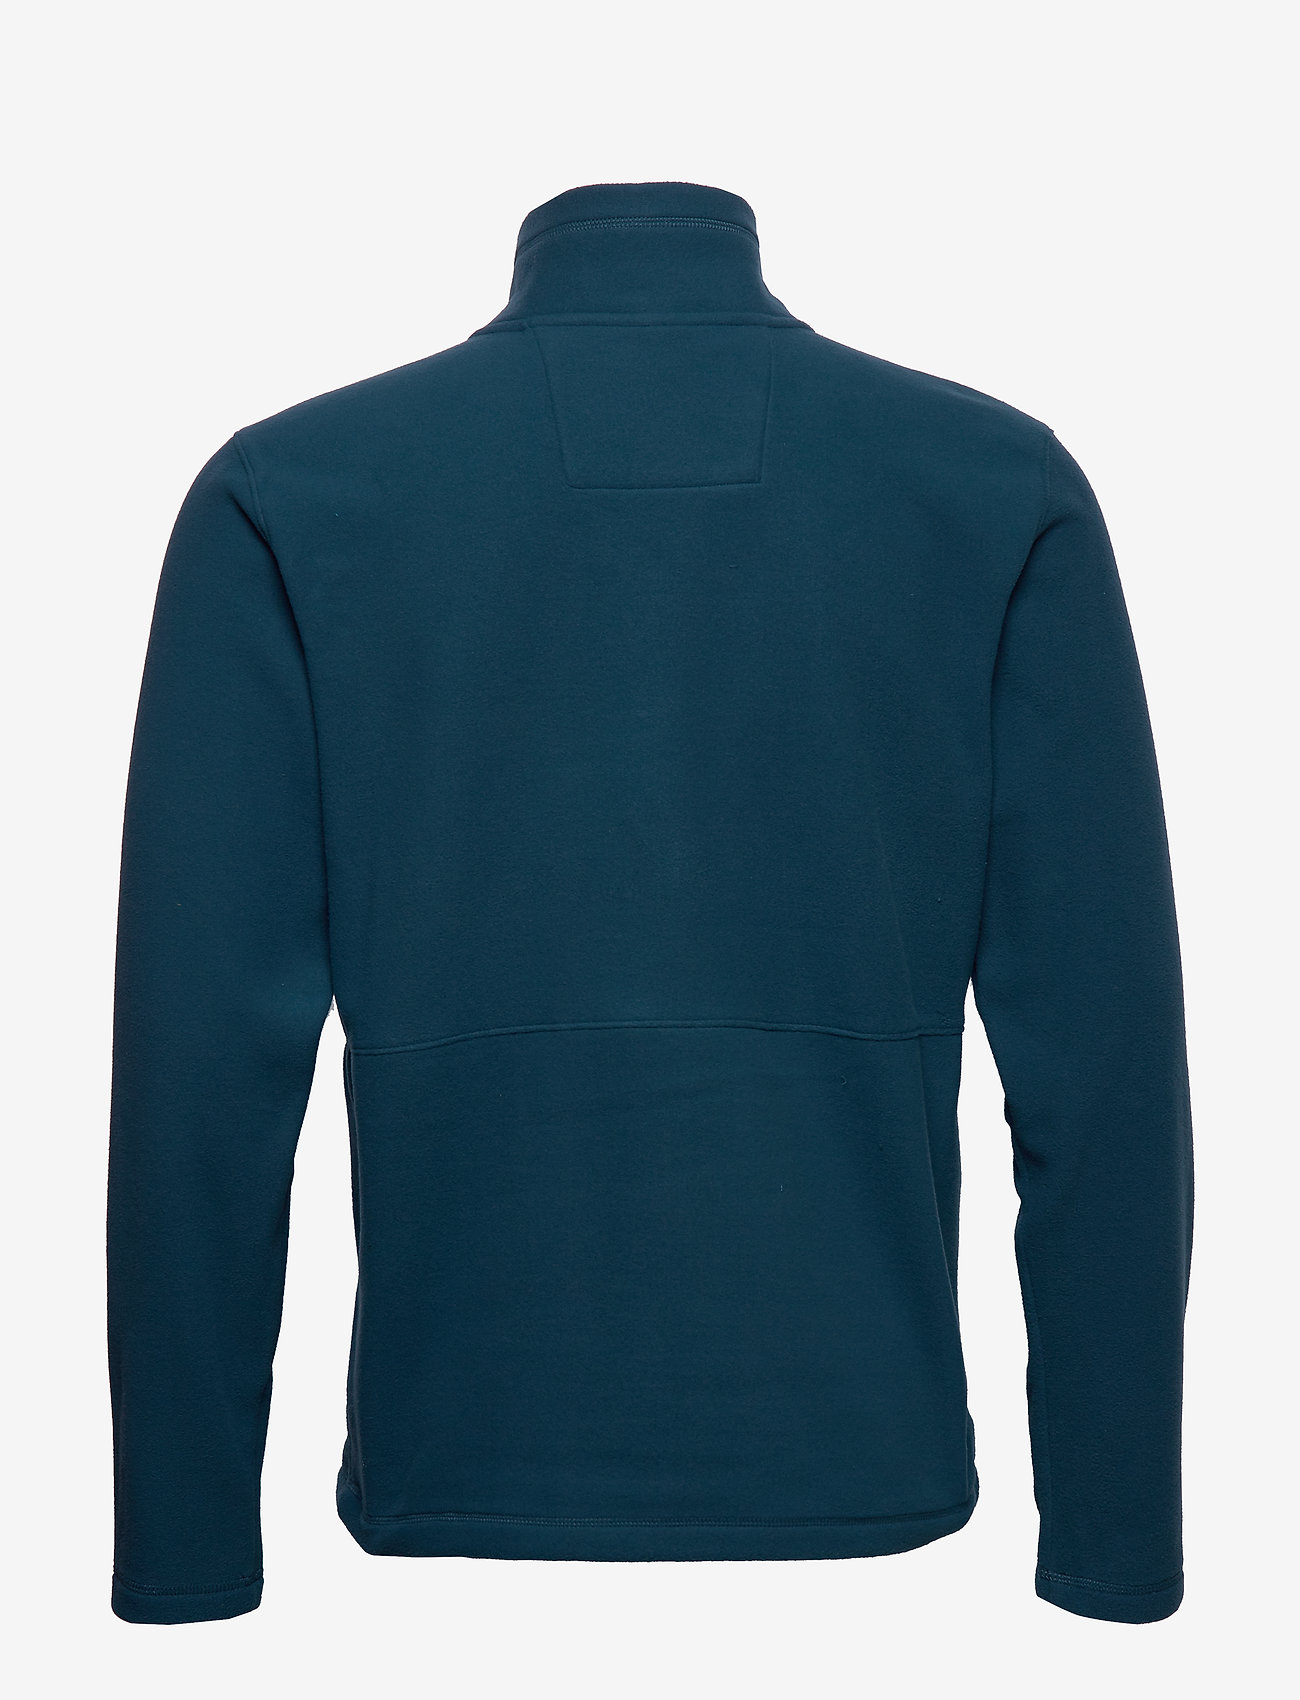 The North Face - M BLOCKED 1/4 ZIP - mittlere lage aus fleece - bluwgtl/clrlkbl - 1